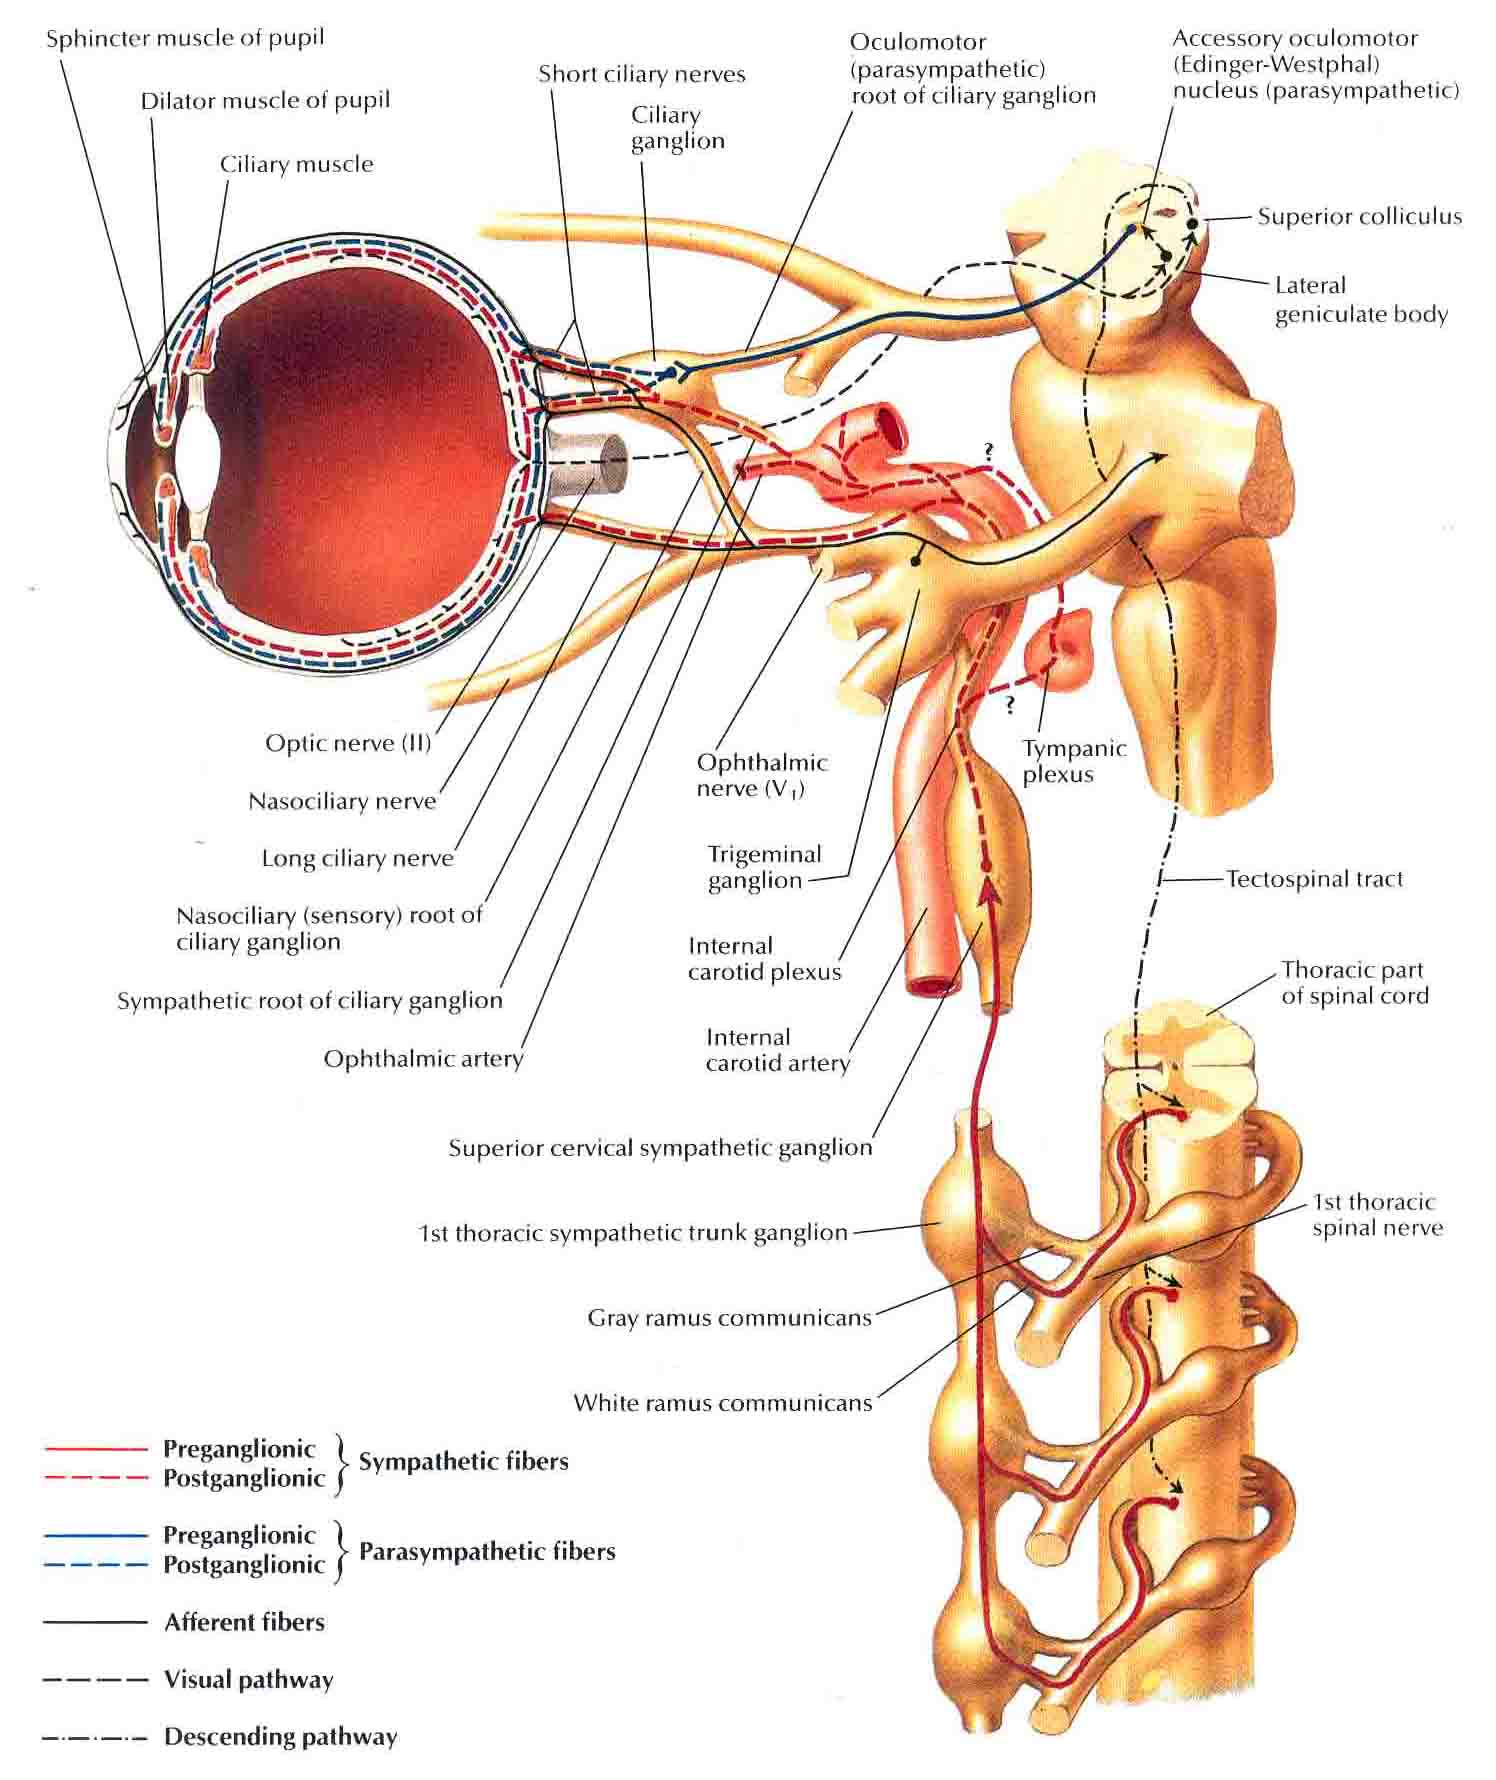 Otic Ganglion Appendix - Anatomy for medical students with images